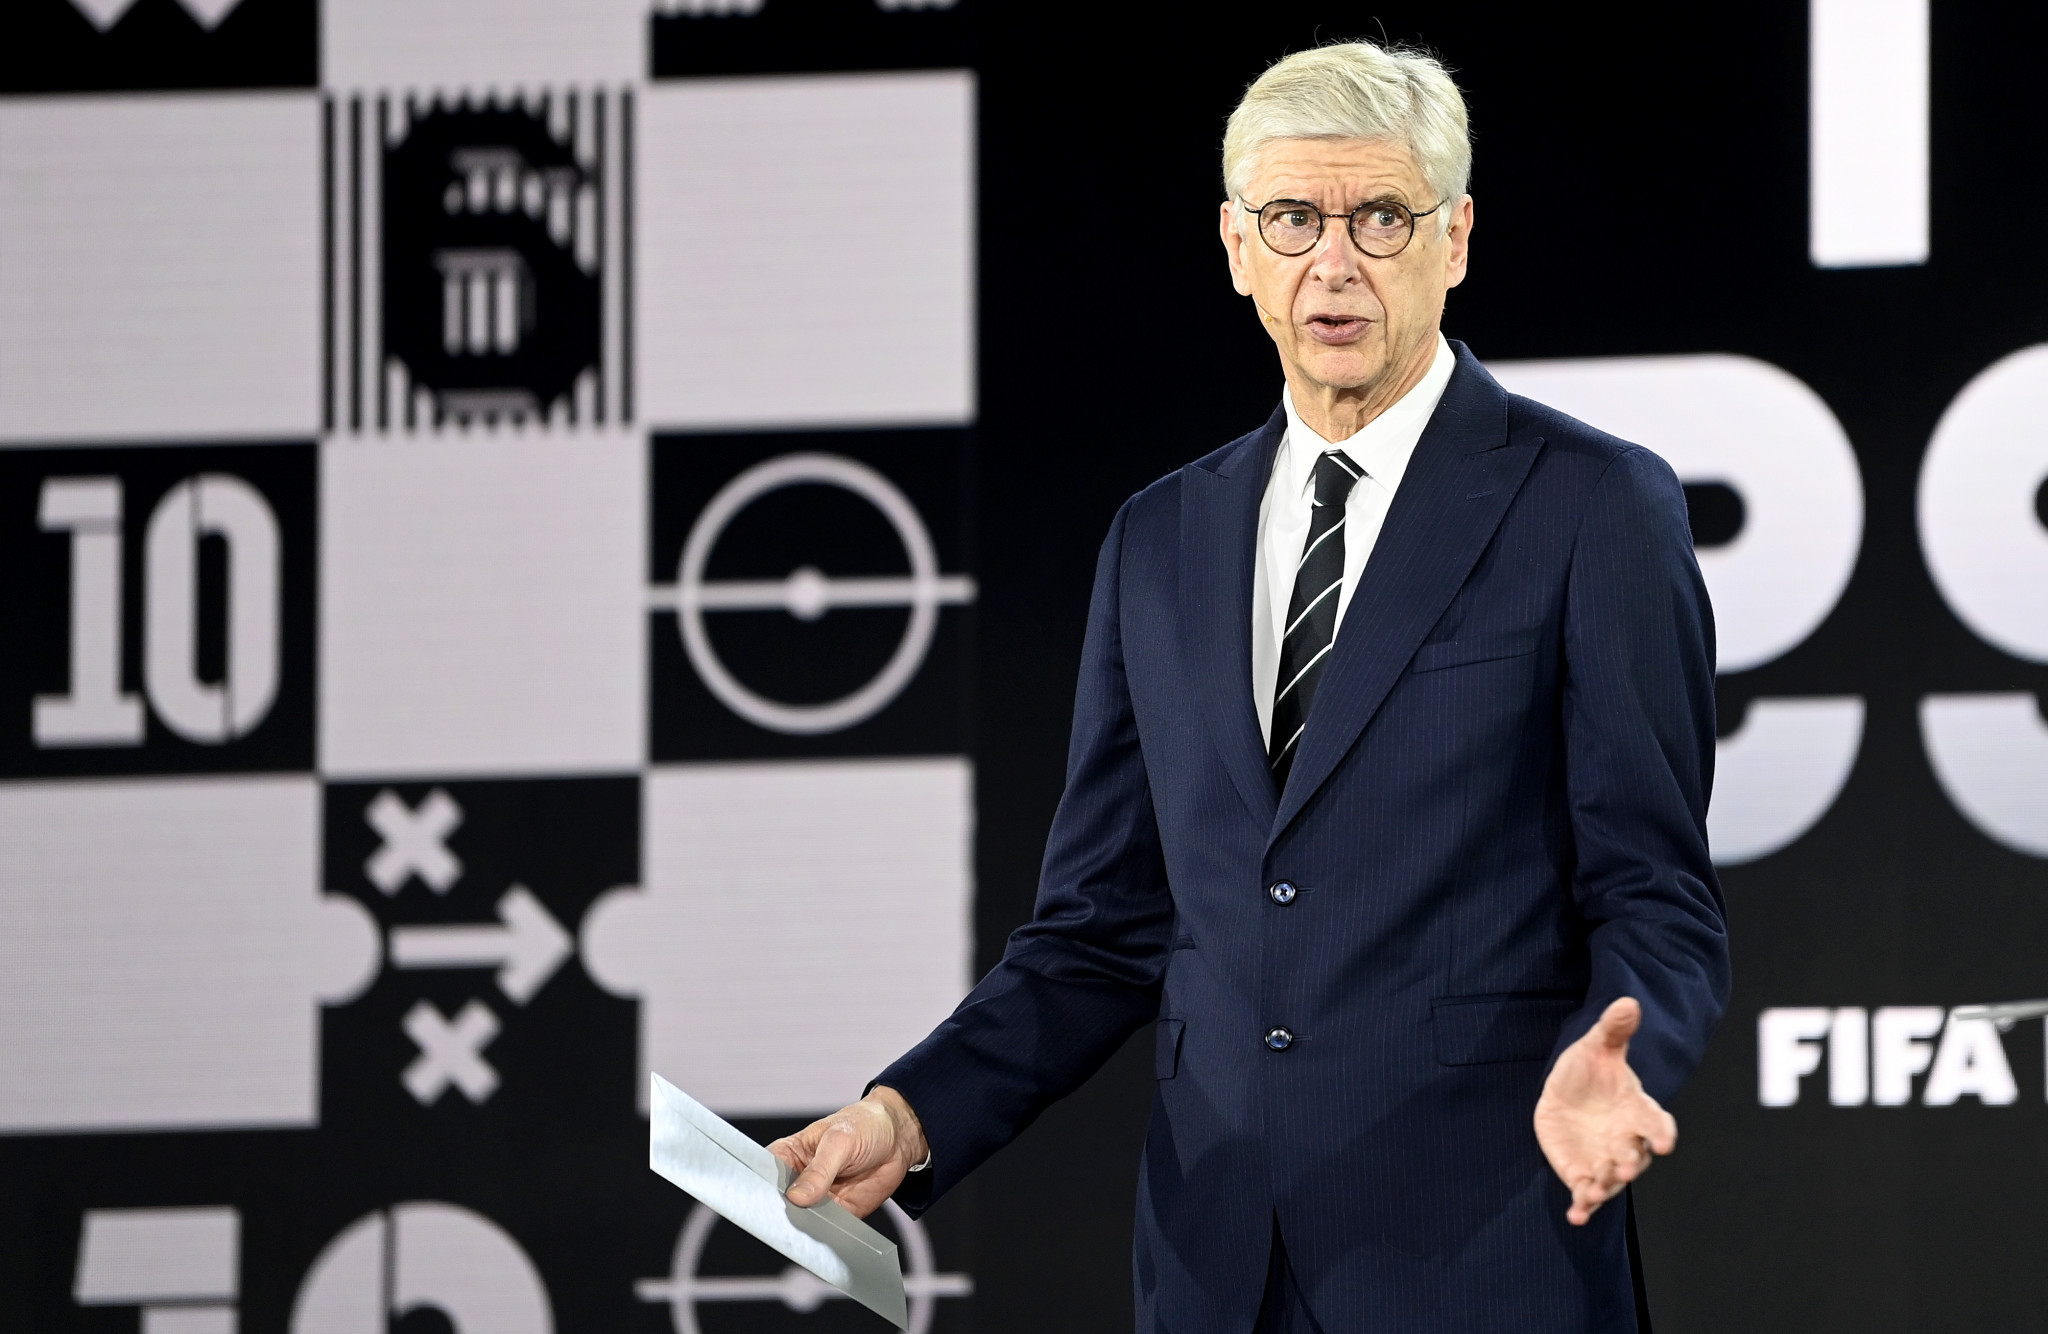 Arsene Wenger has suggestion amending the offside rule to favour attacking players ©Getty Images